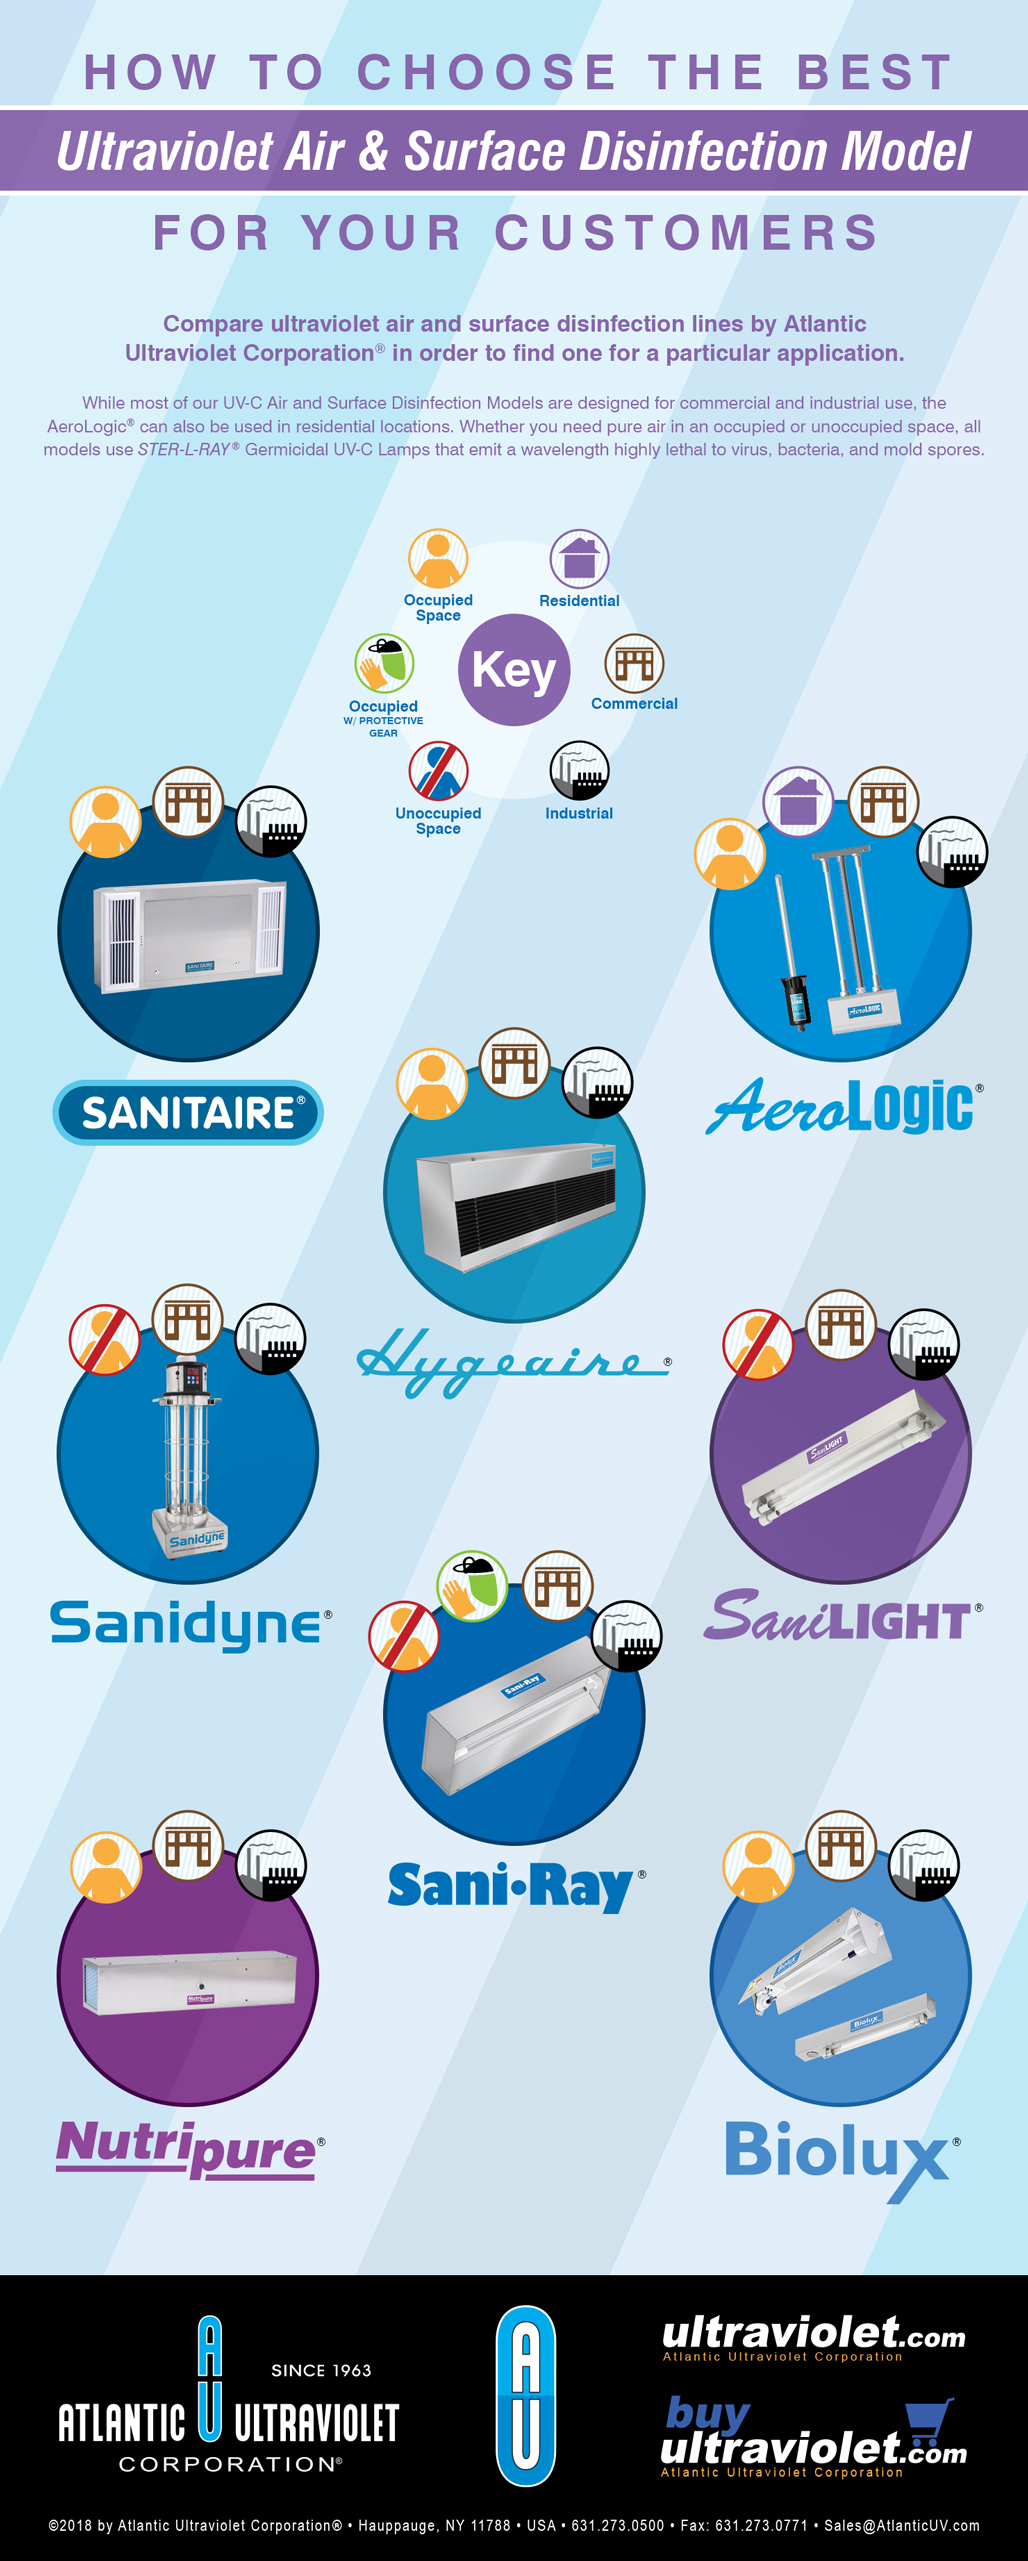 Compare Ultraviolet Air and Surface Disinfection for Your Customers - Infographic